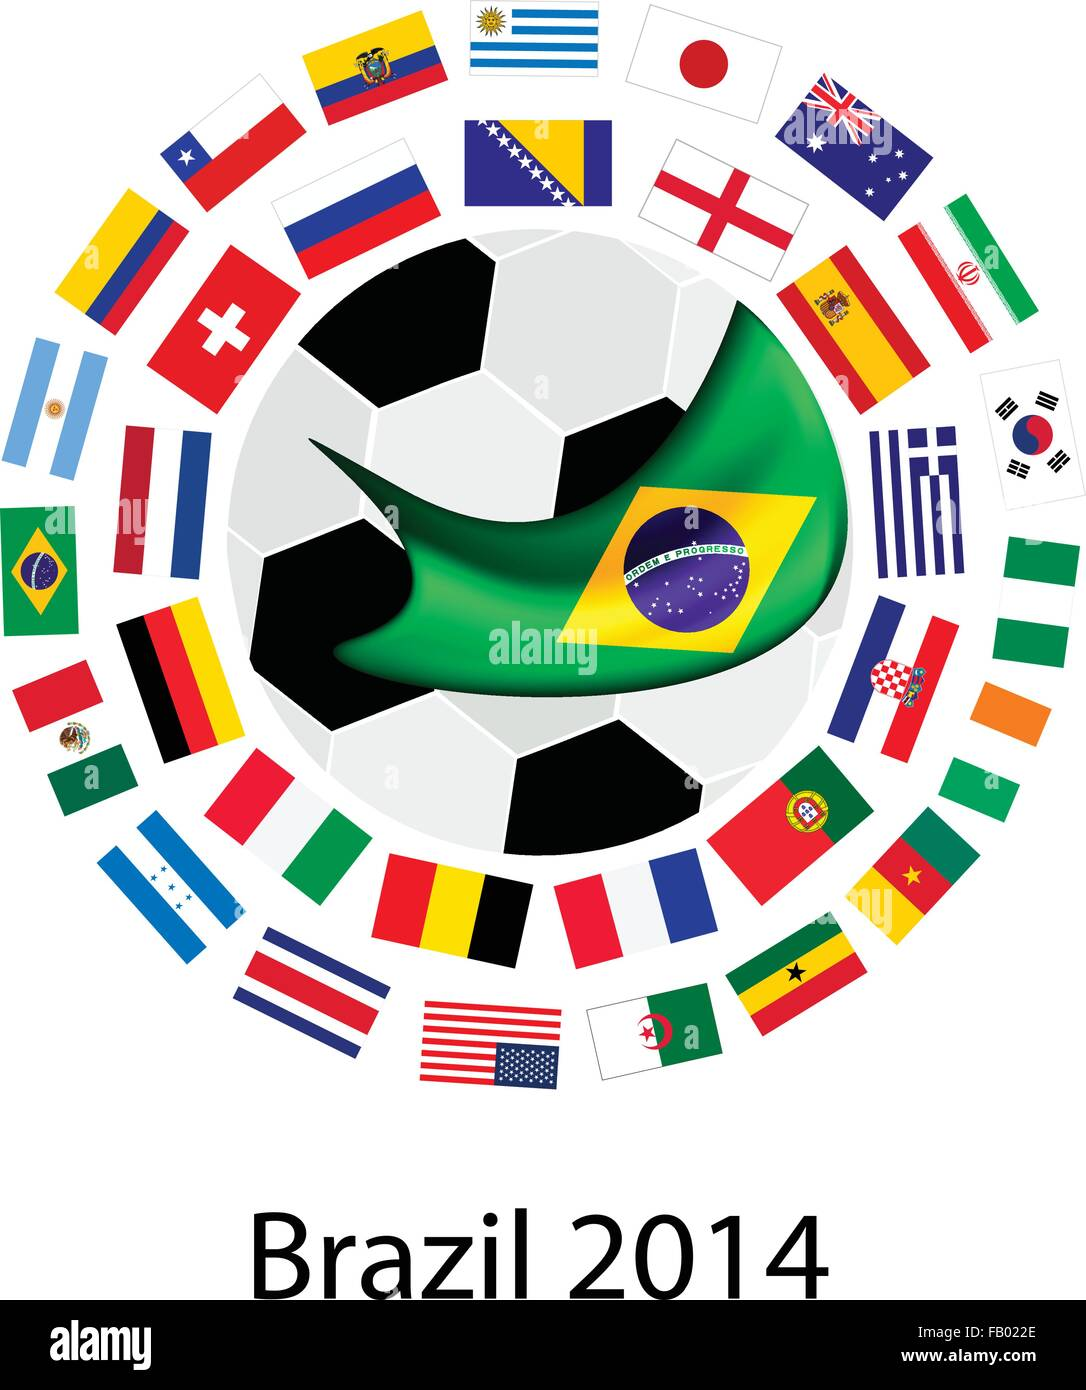 Brazil 2014, An Illustration of The Flags of 32 Nations Around A Soccer Ball of of Football World Cup in Brazil. - Stock Vector